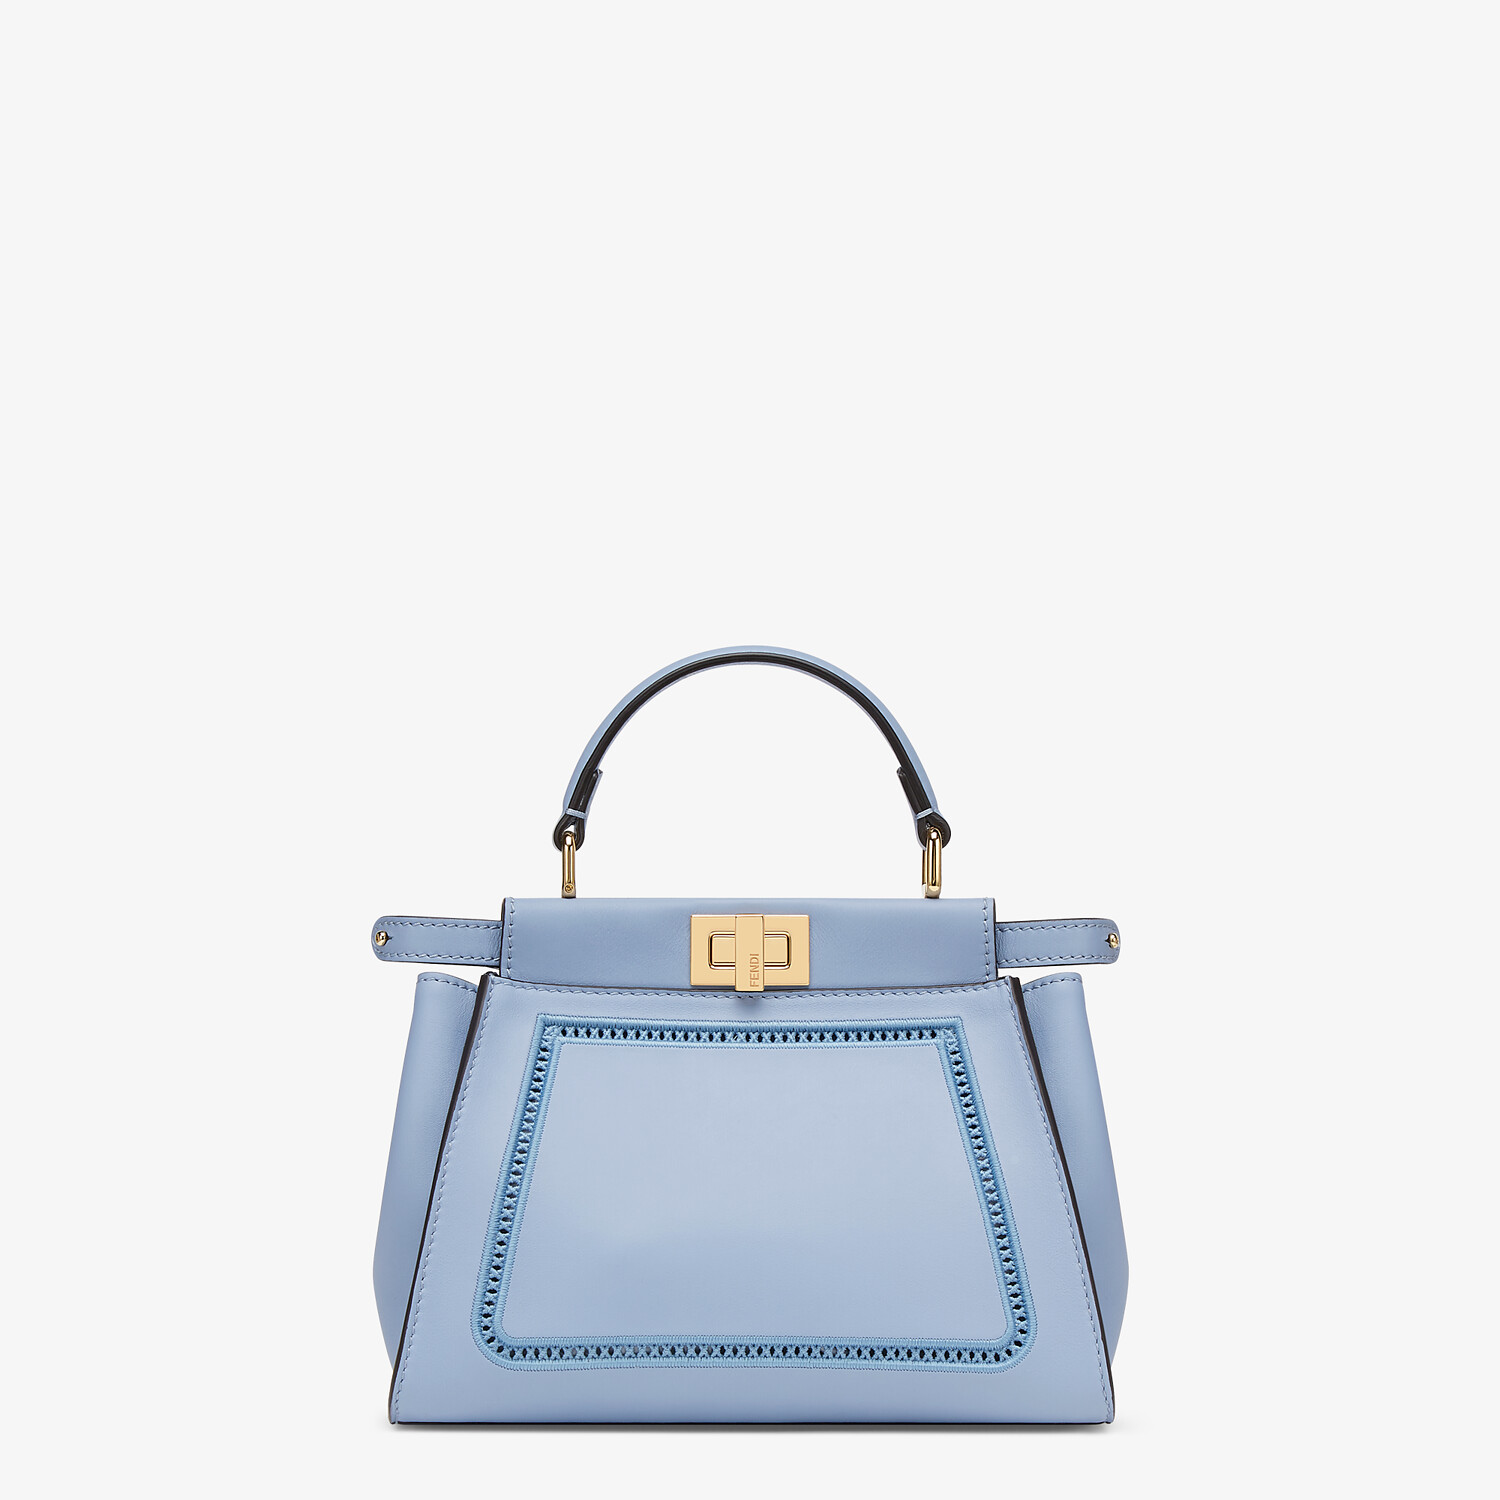 FENDI PEEKABOO ICONIC MINI - Light blue leather bag with embroidery - view 1 detail